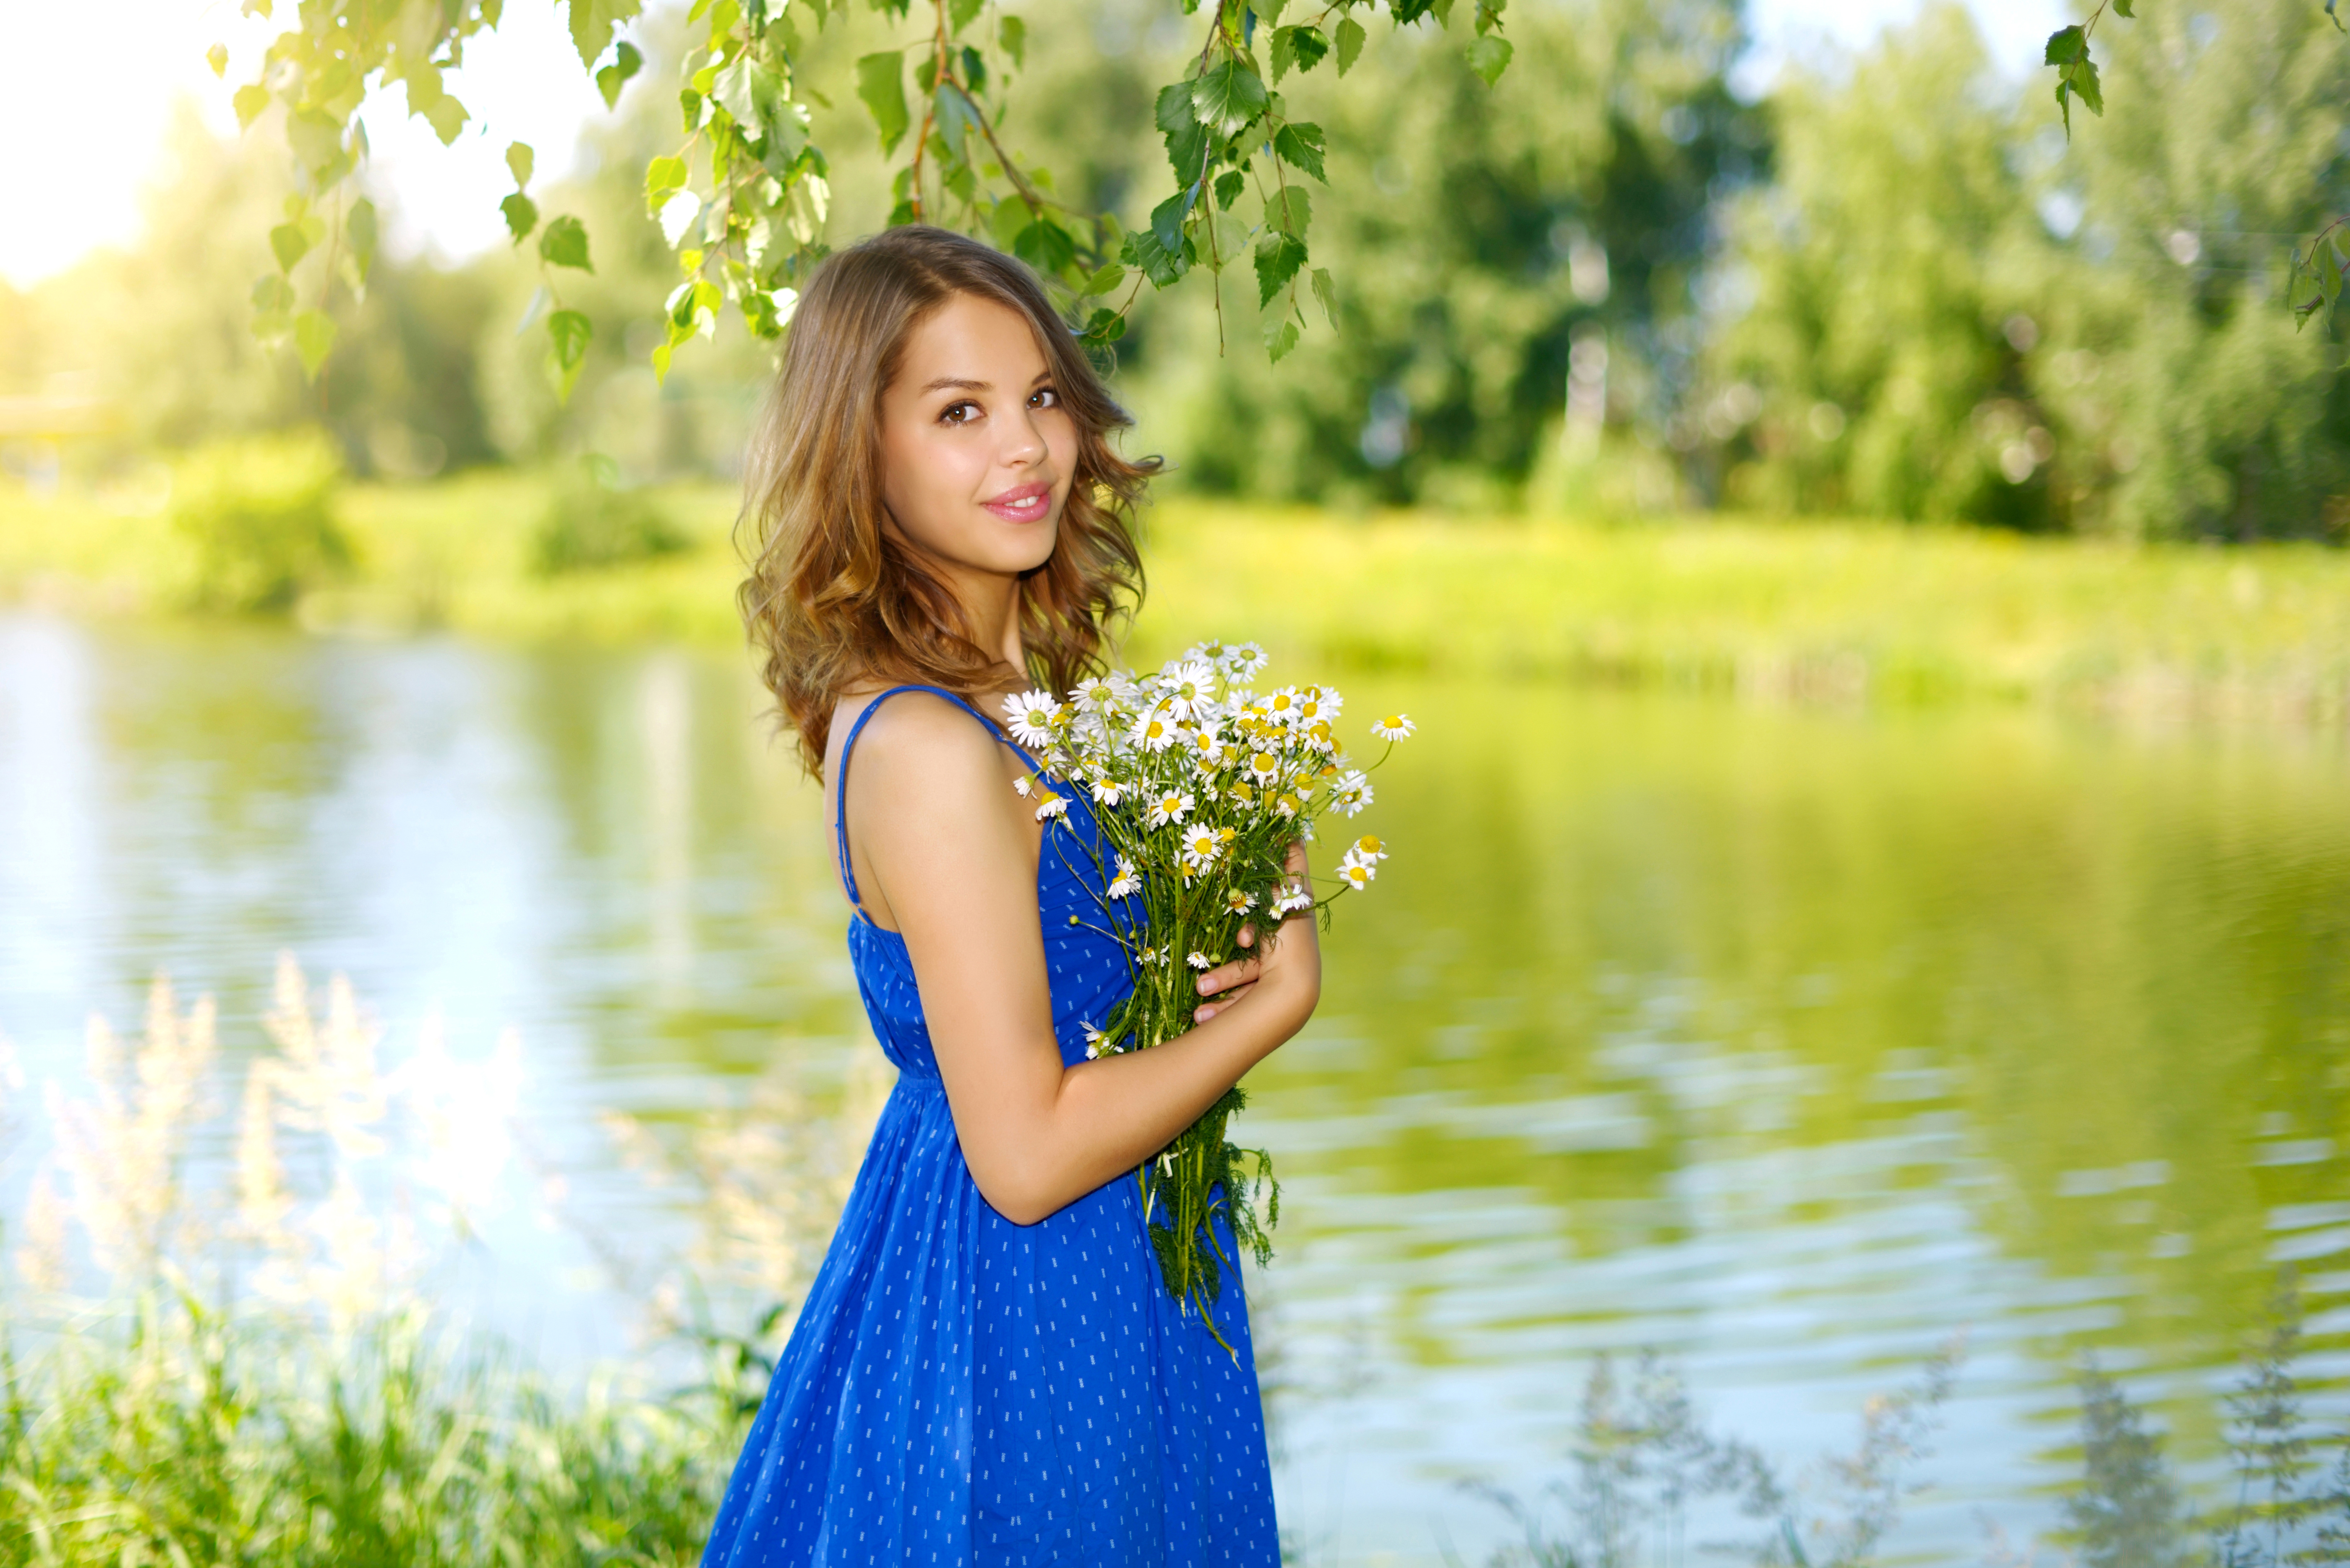 159 blue dress hd wallpapers | background images - wallpaper abyss